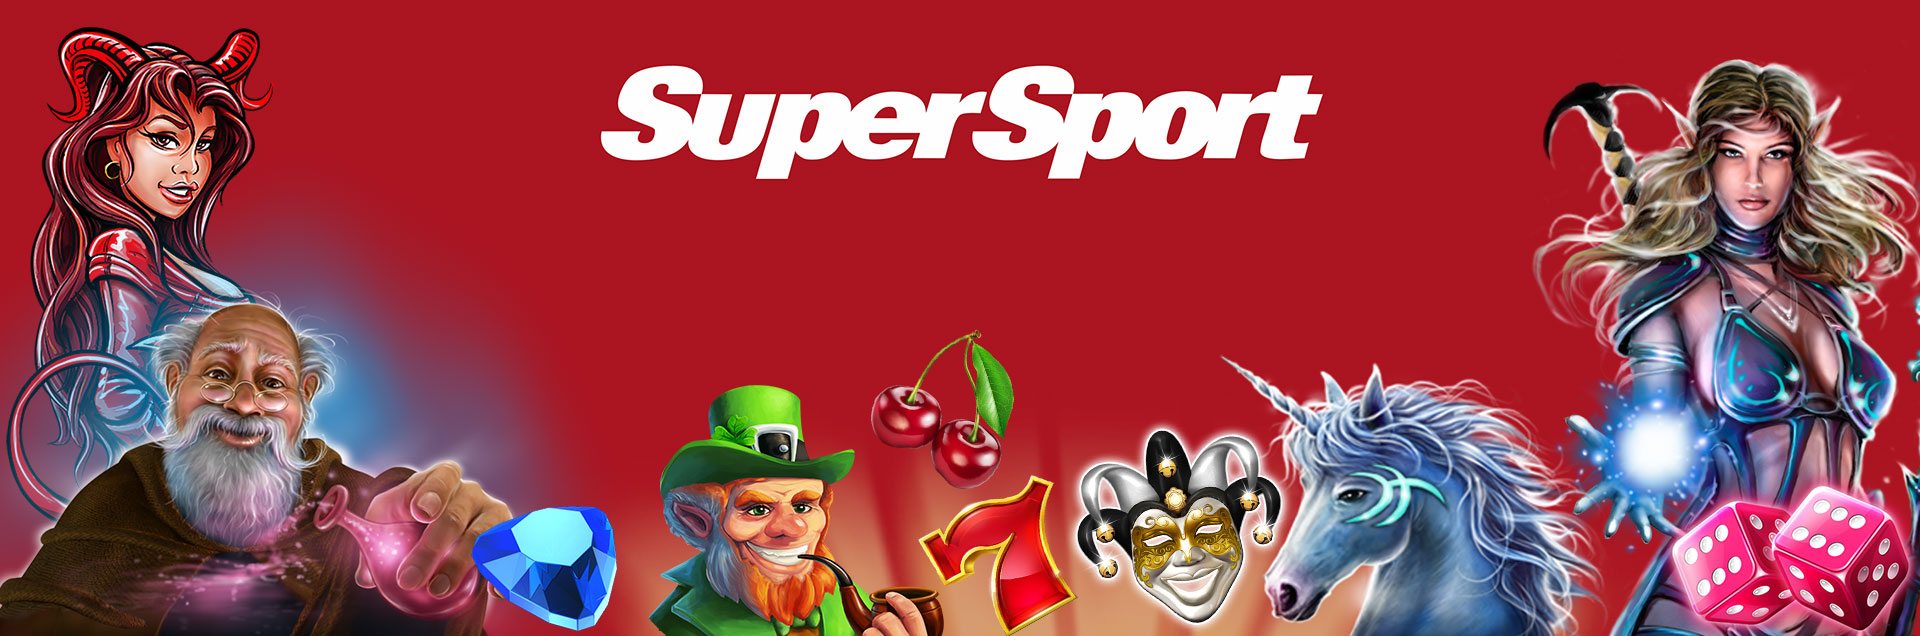 SuperSport Header Image Homepage